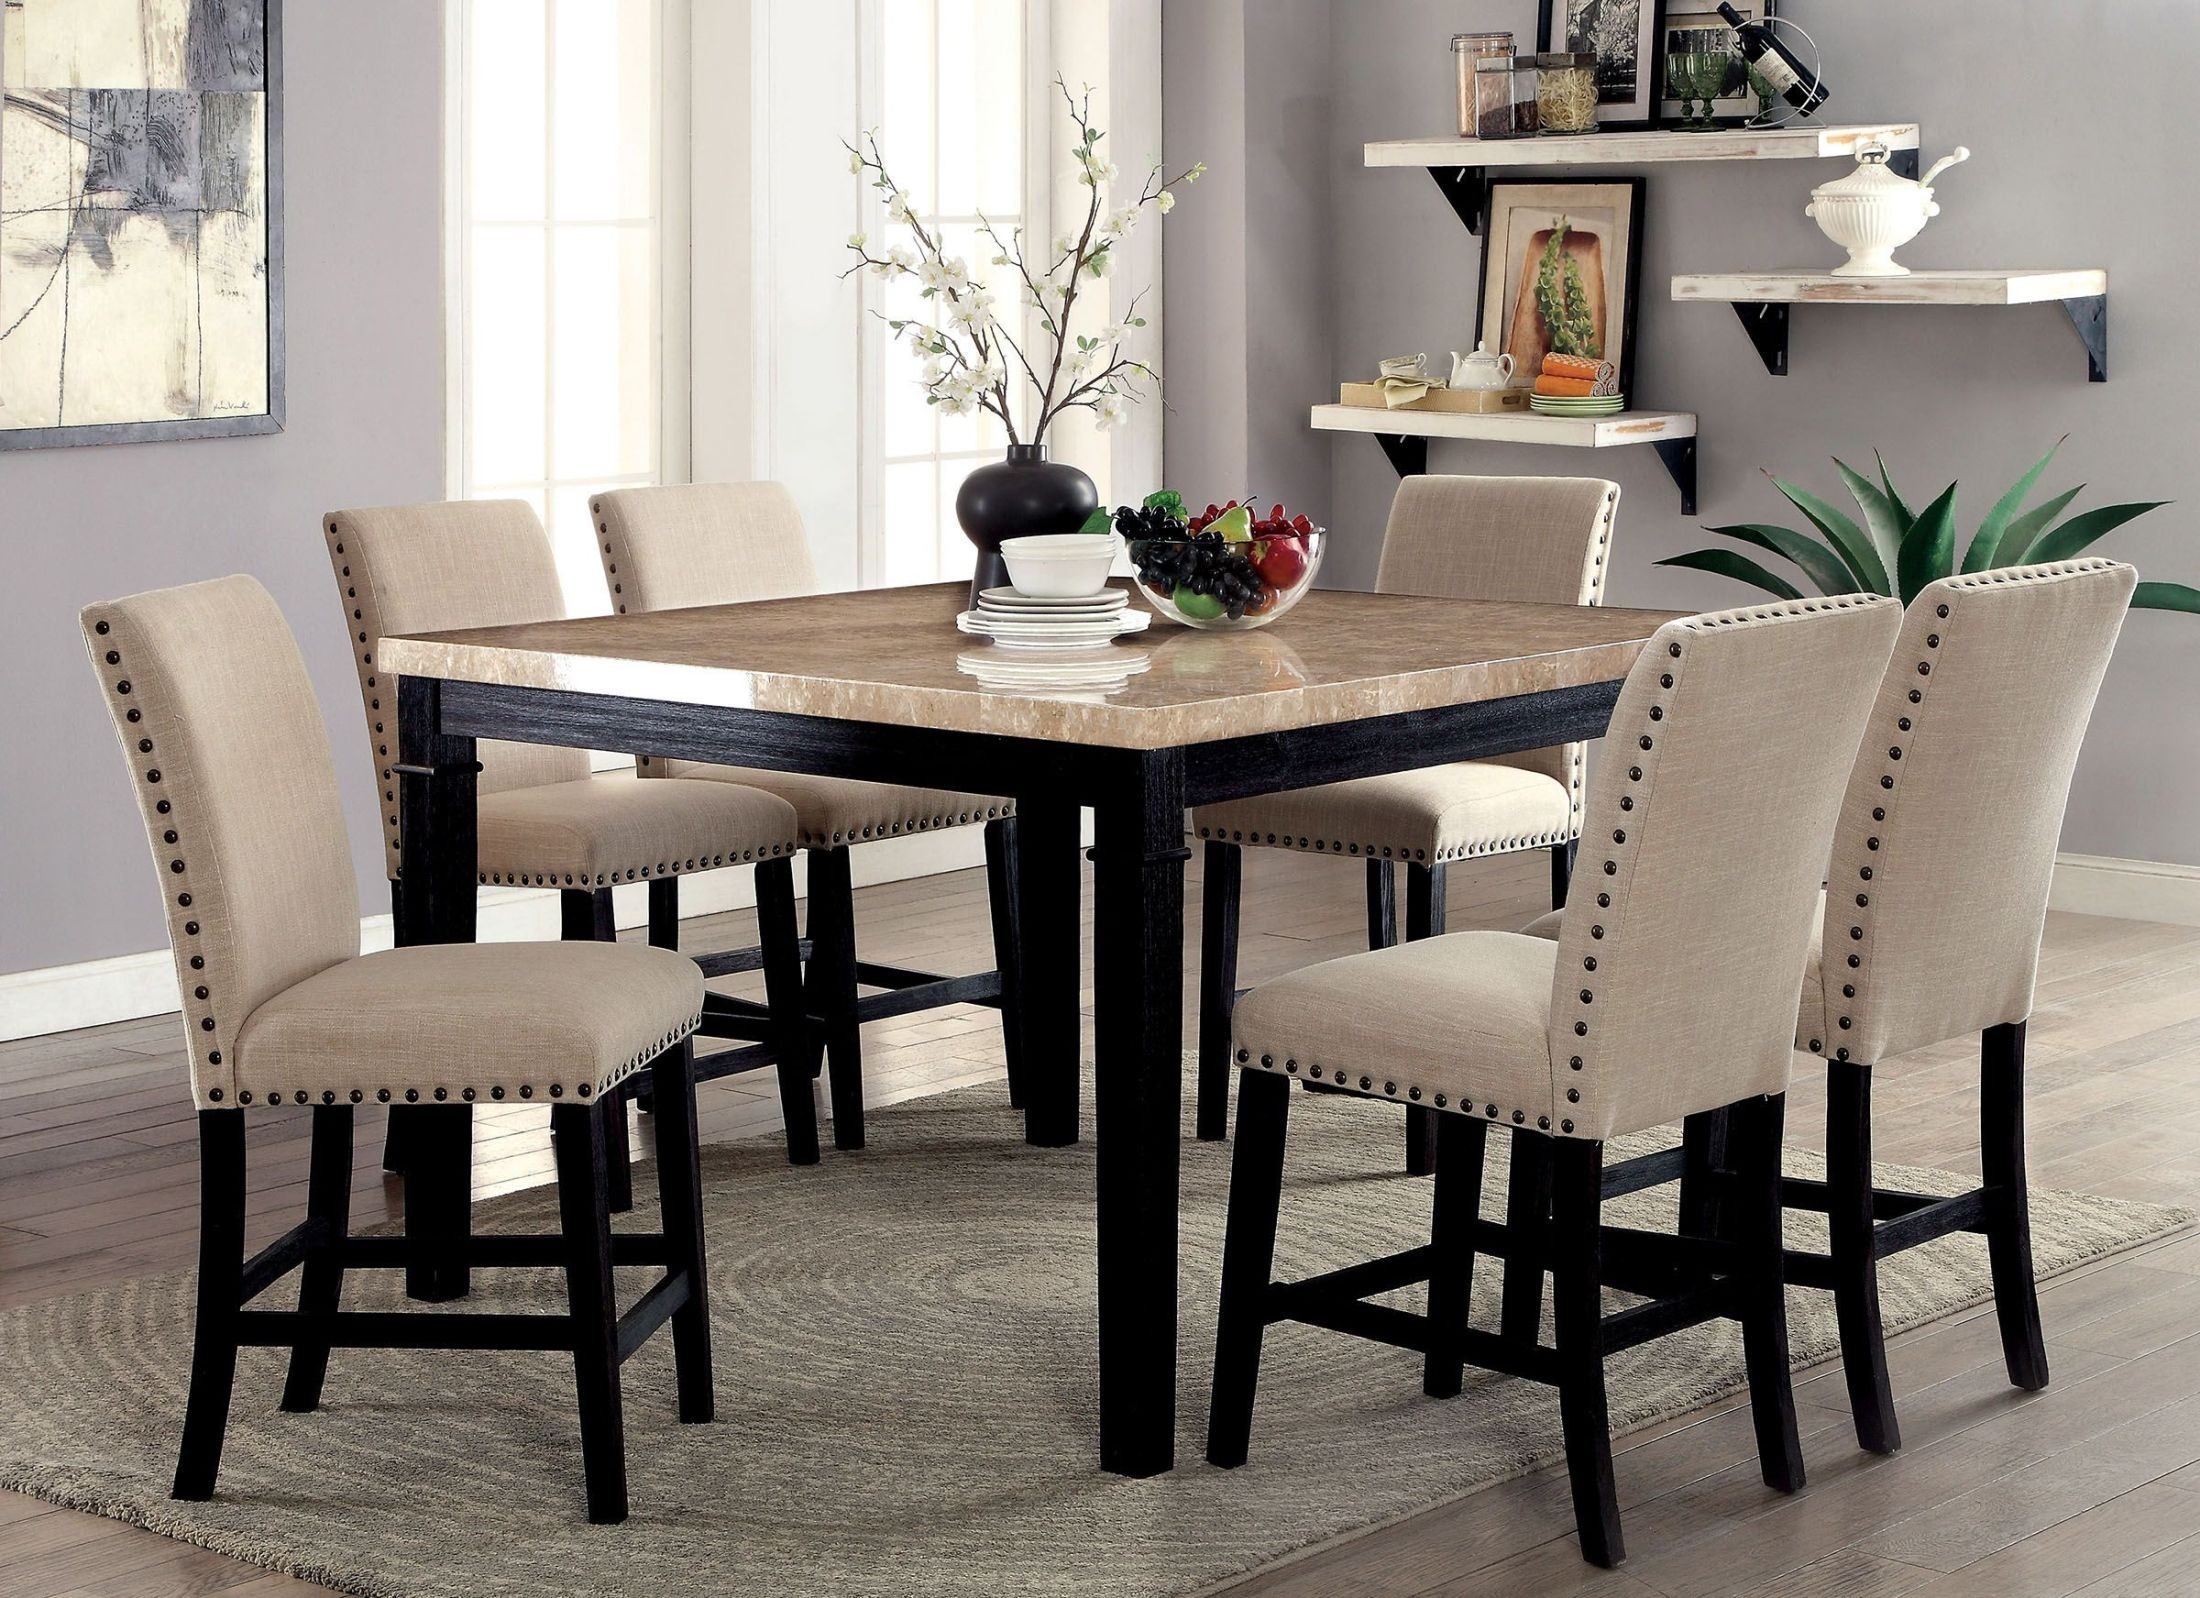 dining room counter height tables | Dodson II Black Counter Height Dining Room Set from ...